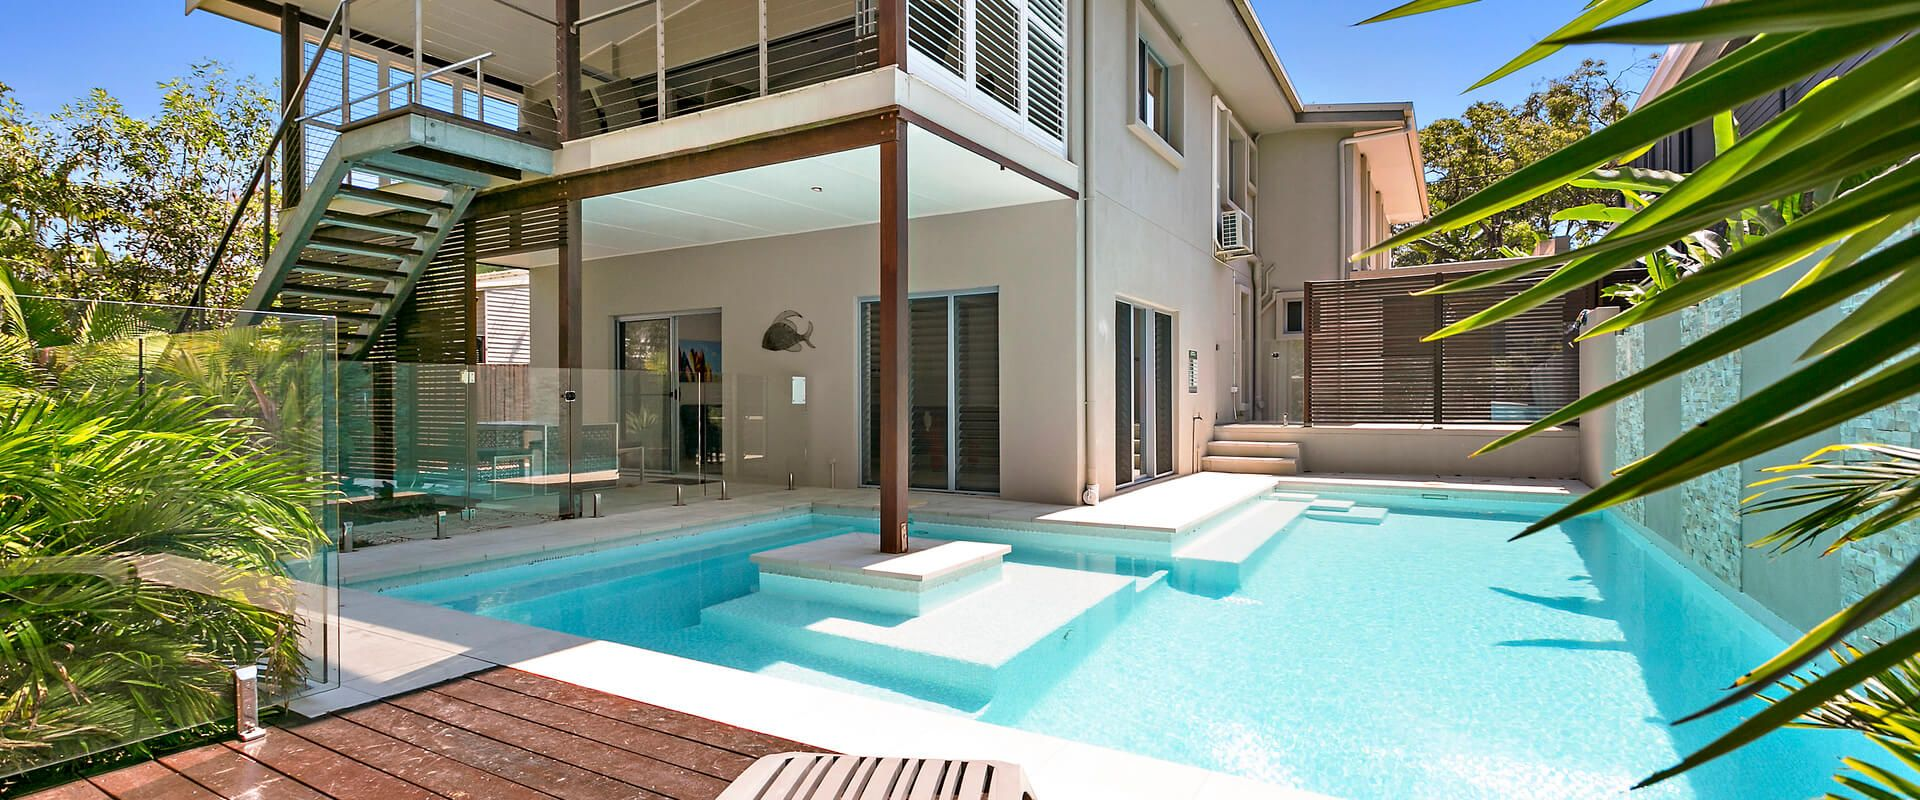 Dwyer St – Large Elegant Beach House in Tranquil Location